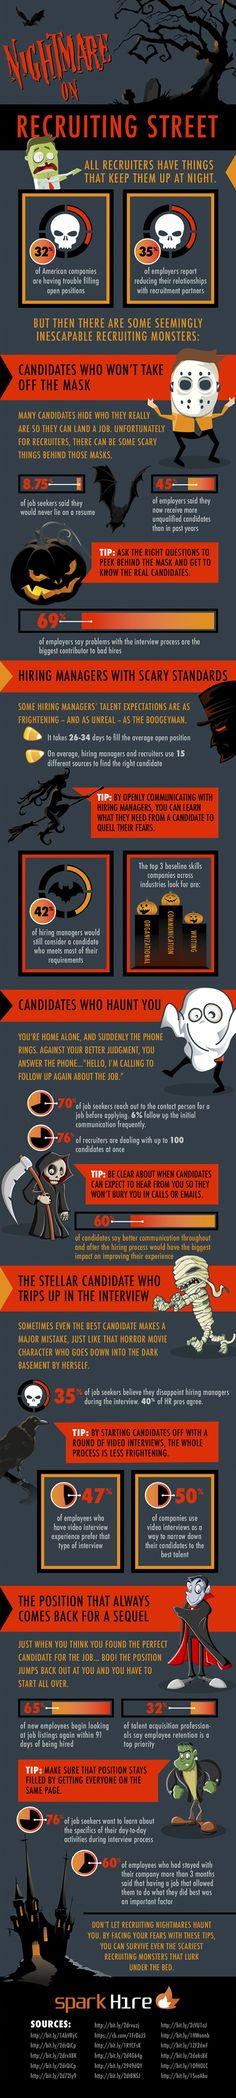 Being a recruiter can be a very rewarding career. But, between the needy clients and flaky candidates, things can get scary. This infographic will help.